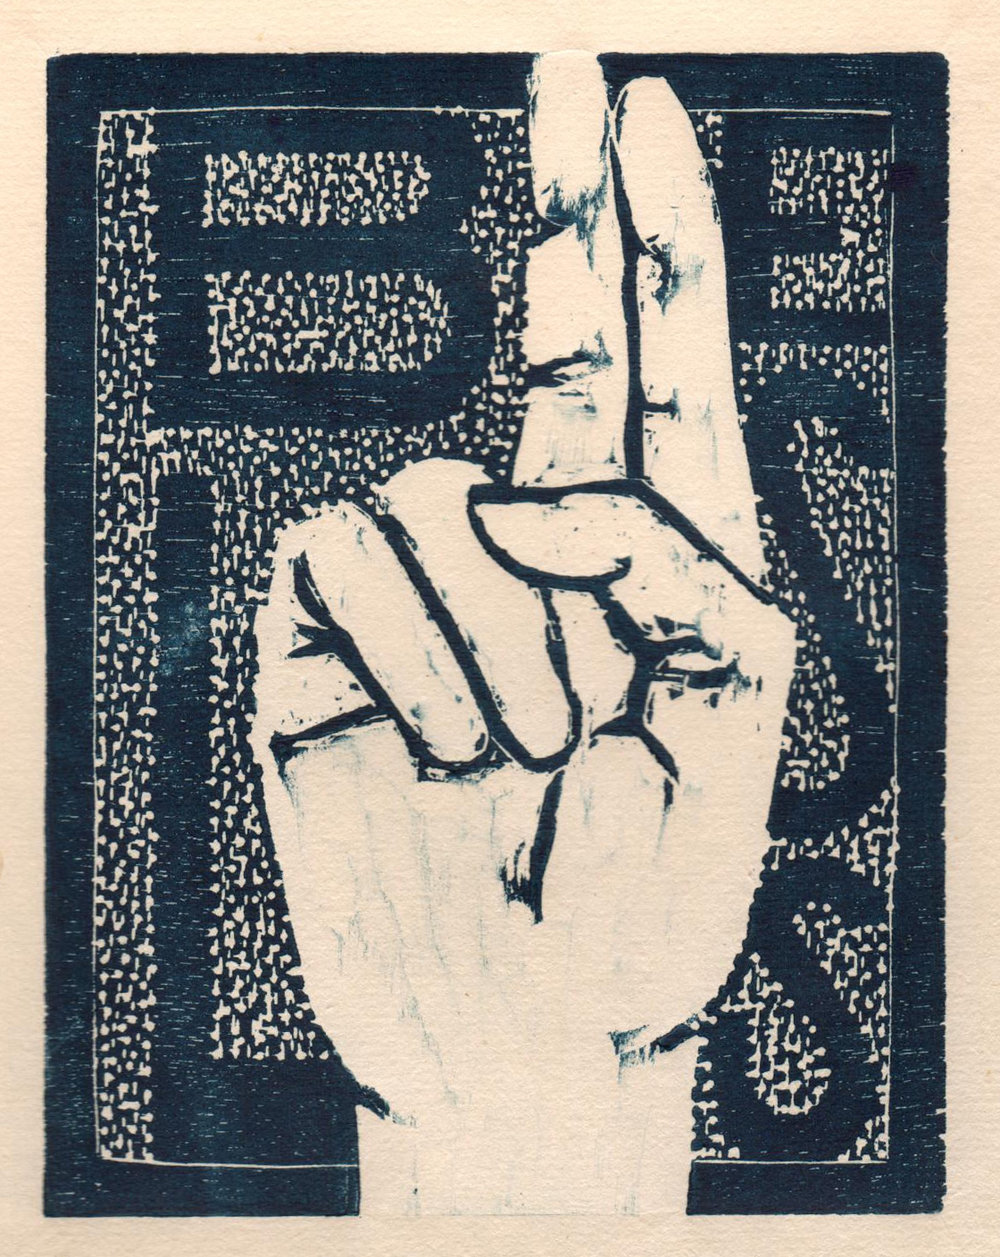 "'Helping Hands, Bless', woodcut, 6.5"" x 5"", $80 unframed"